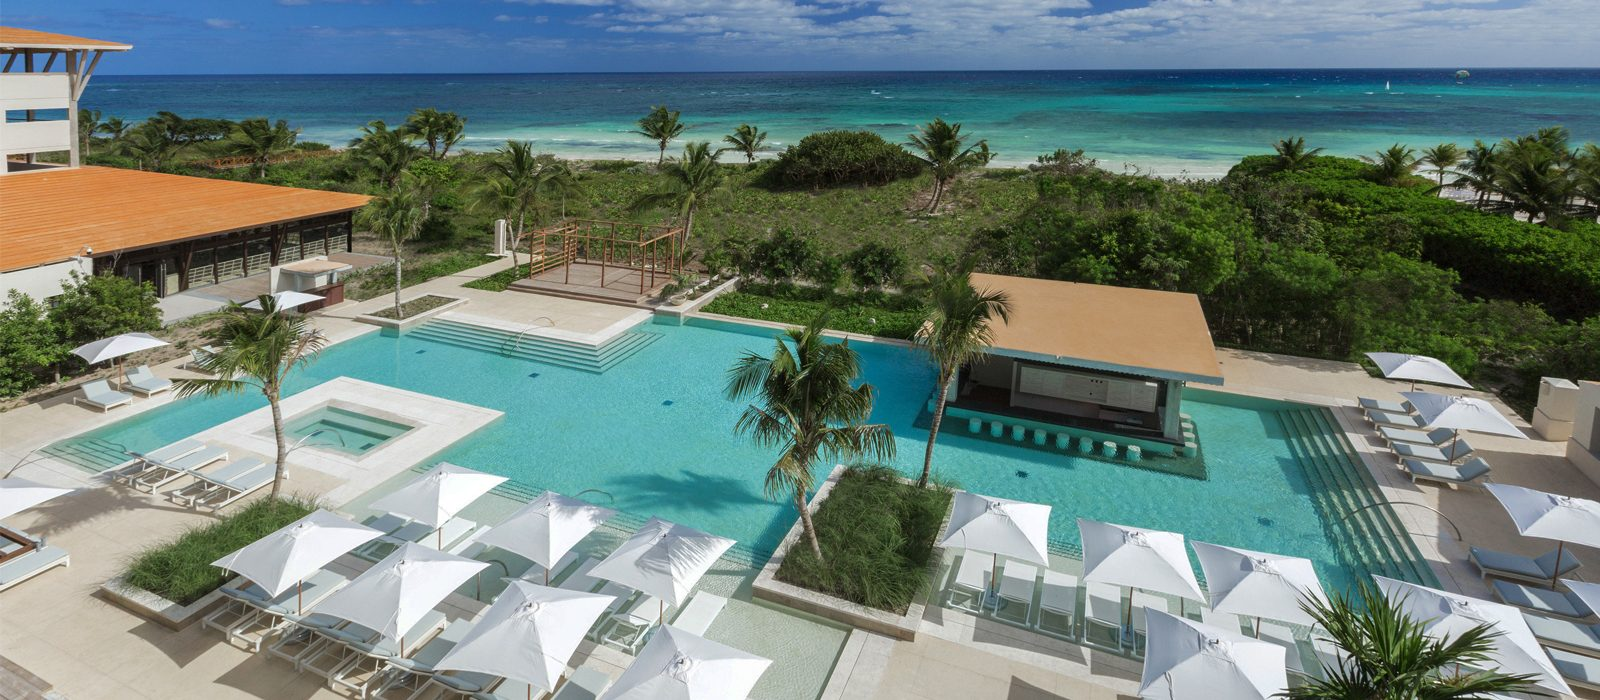 Luxury Mexico holiday Packages UNICO 2080 Riviera Maya Hotel Header